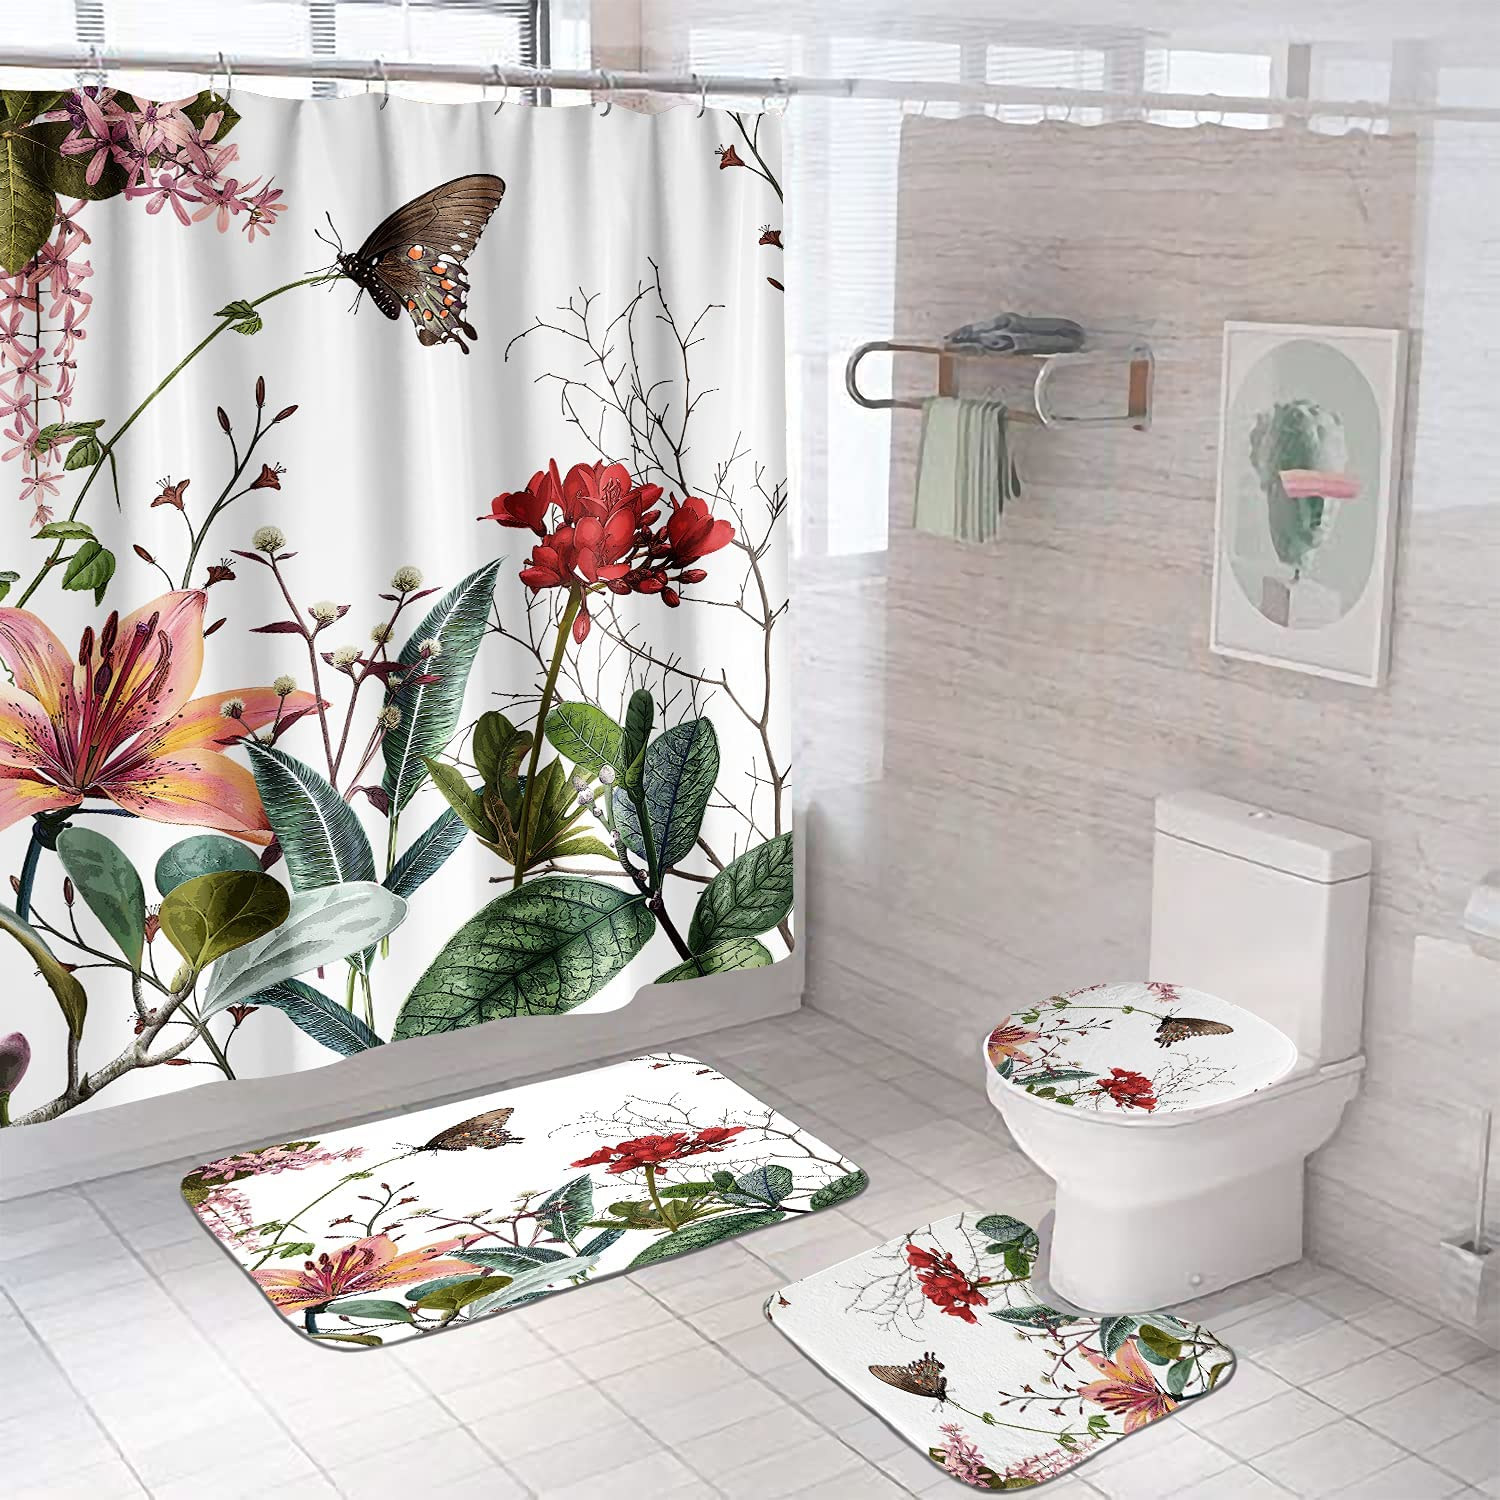 Over item handling ☆ 4 Pcs Toilet Lid Cover Bath Choice Shower Floral Mat Set with Curtain